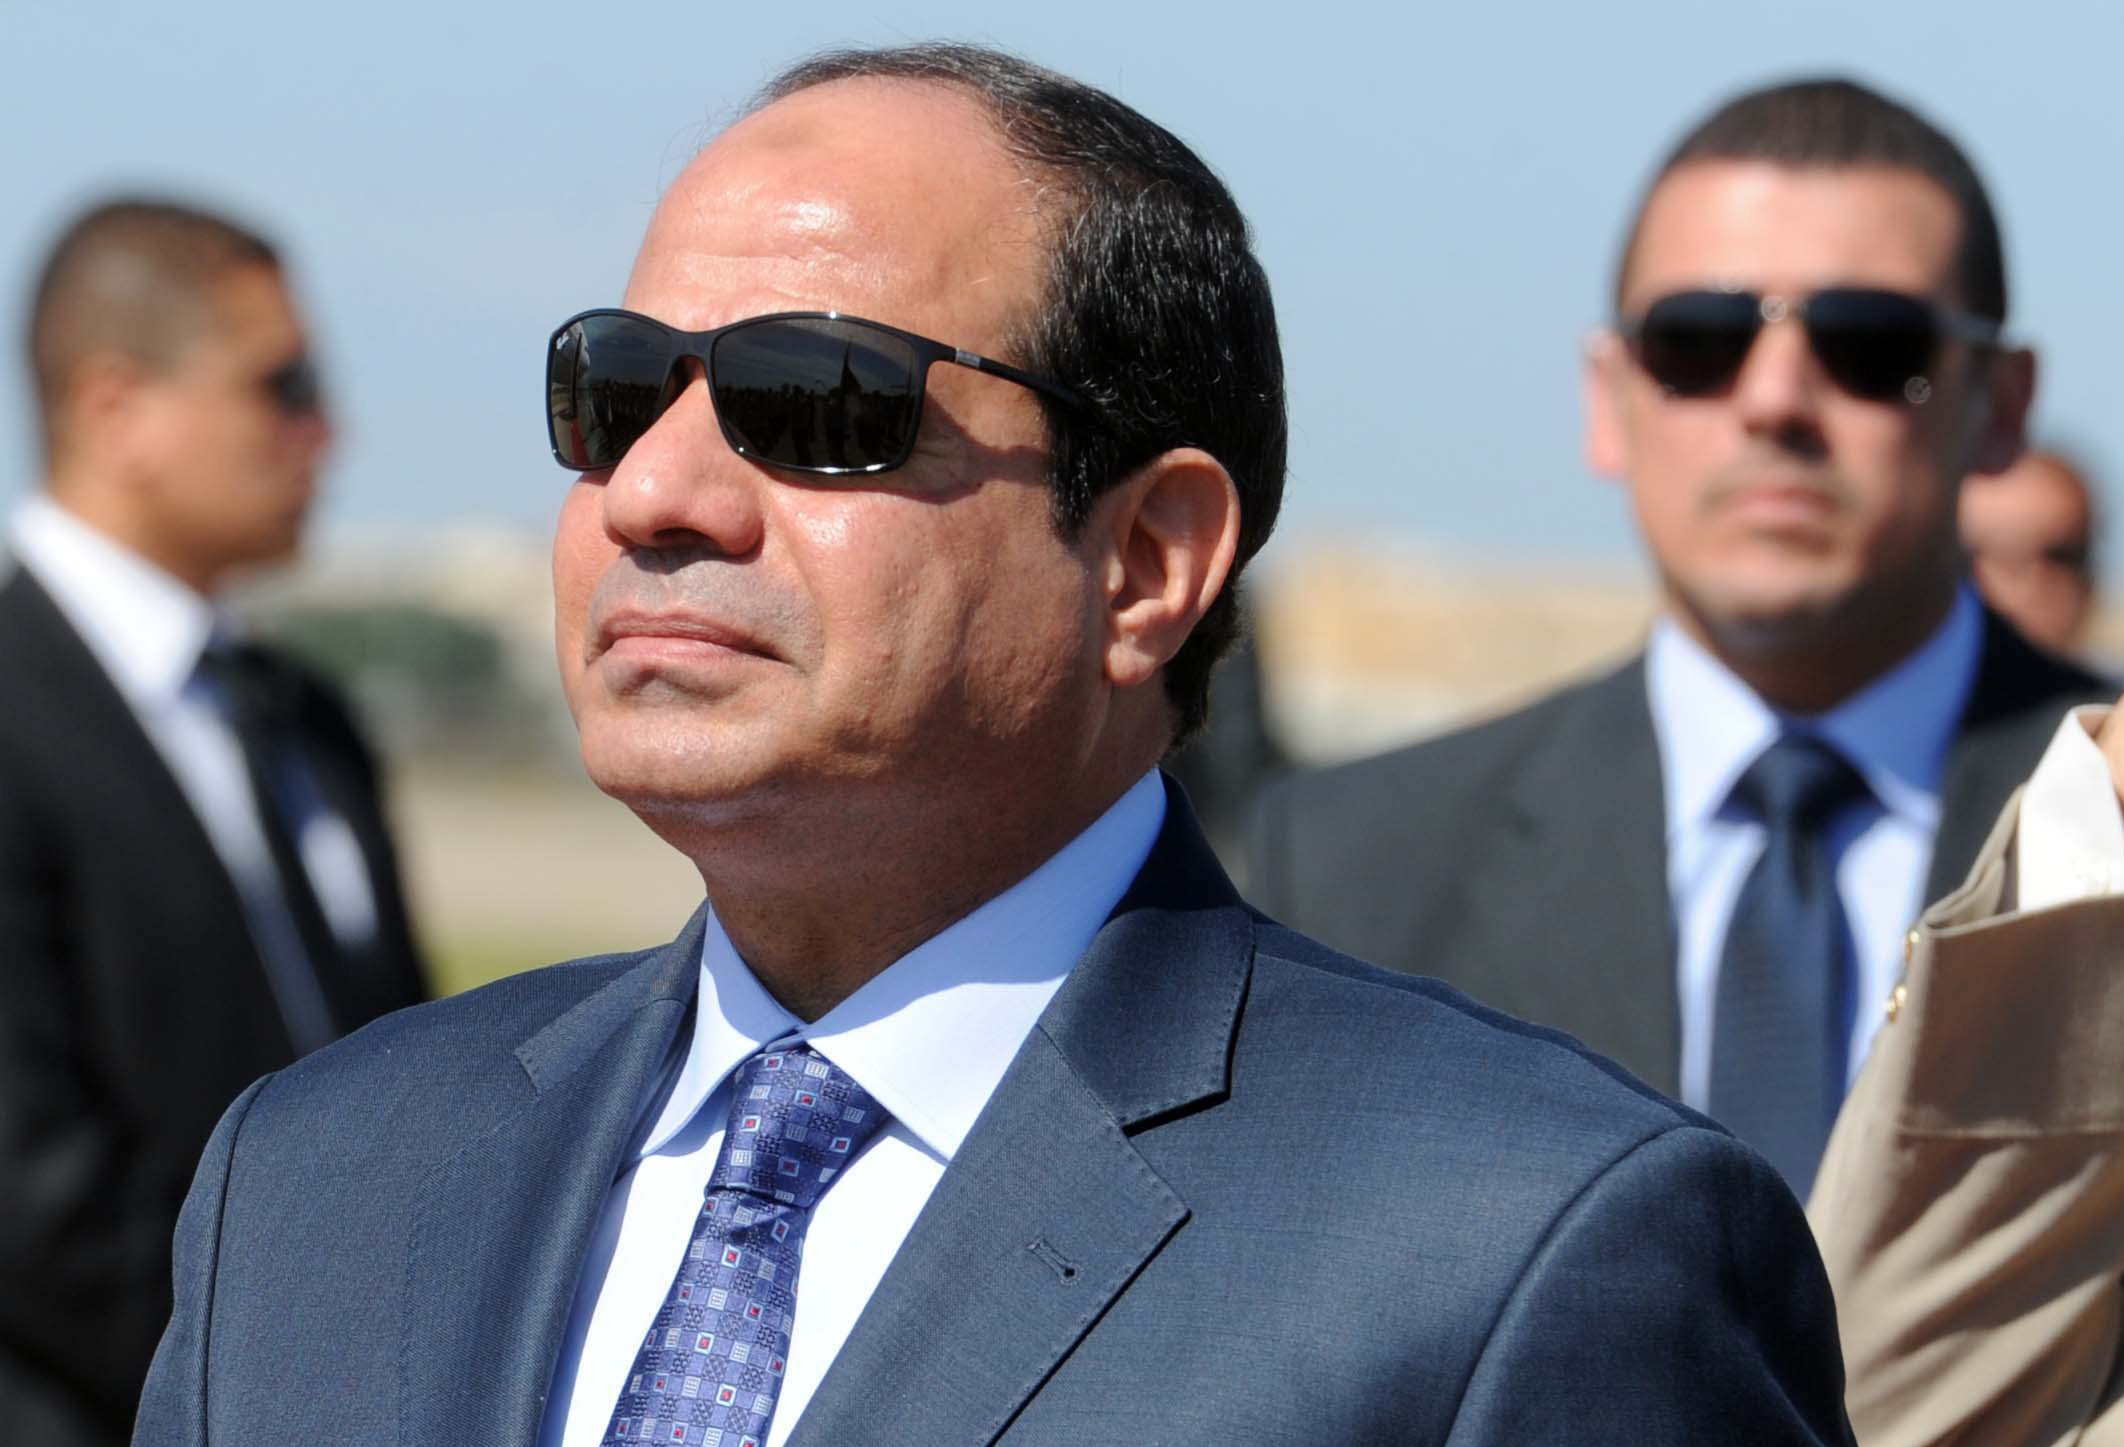 President Abdel Fattah Al-Sisi stressed in a statement Saturday the importance of Morocco's partnership with and support of Egypt during a meeting with the North African country's foreign minister. (AFP File Photo)